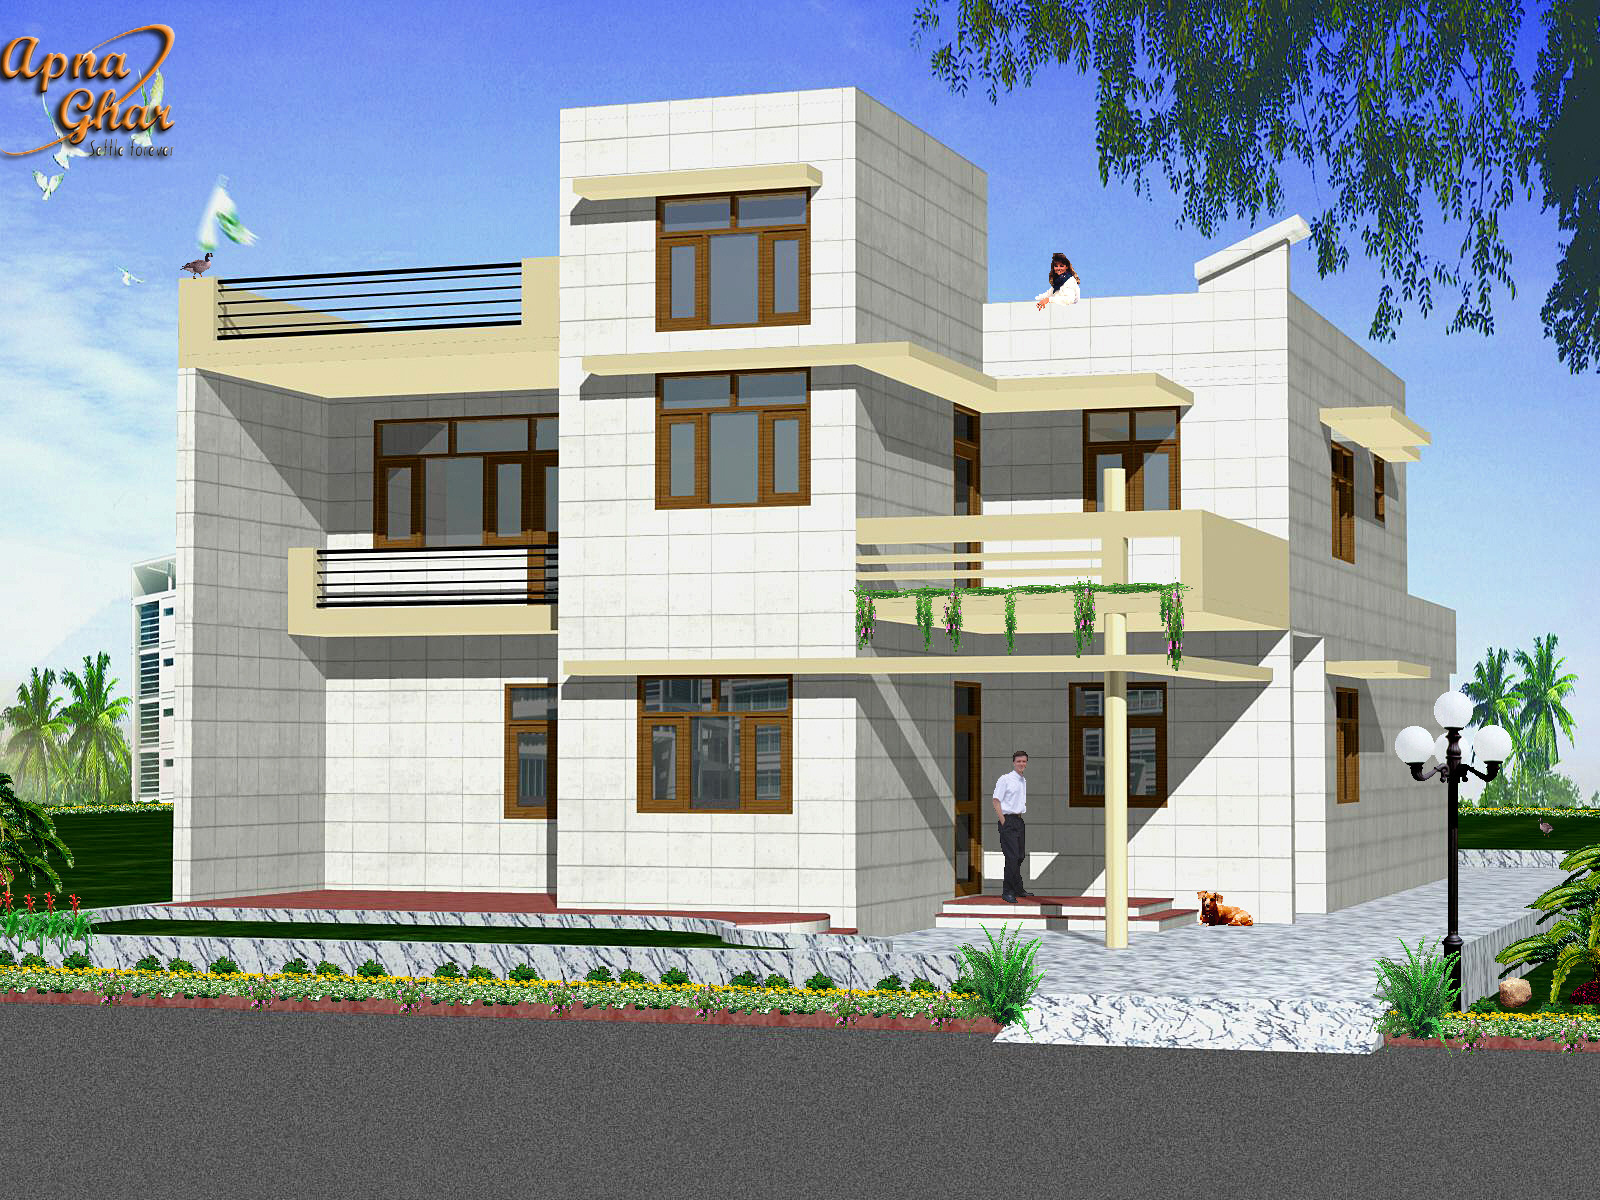 Duplex front elevation homedesignpictures for Front elevations of duplex houses